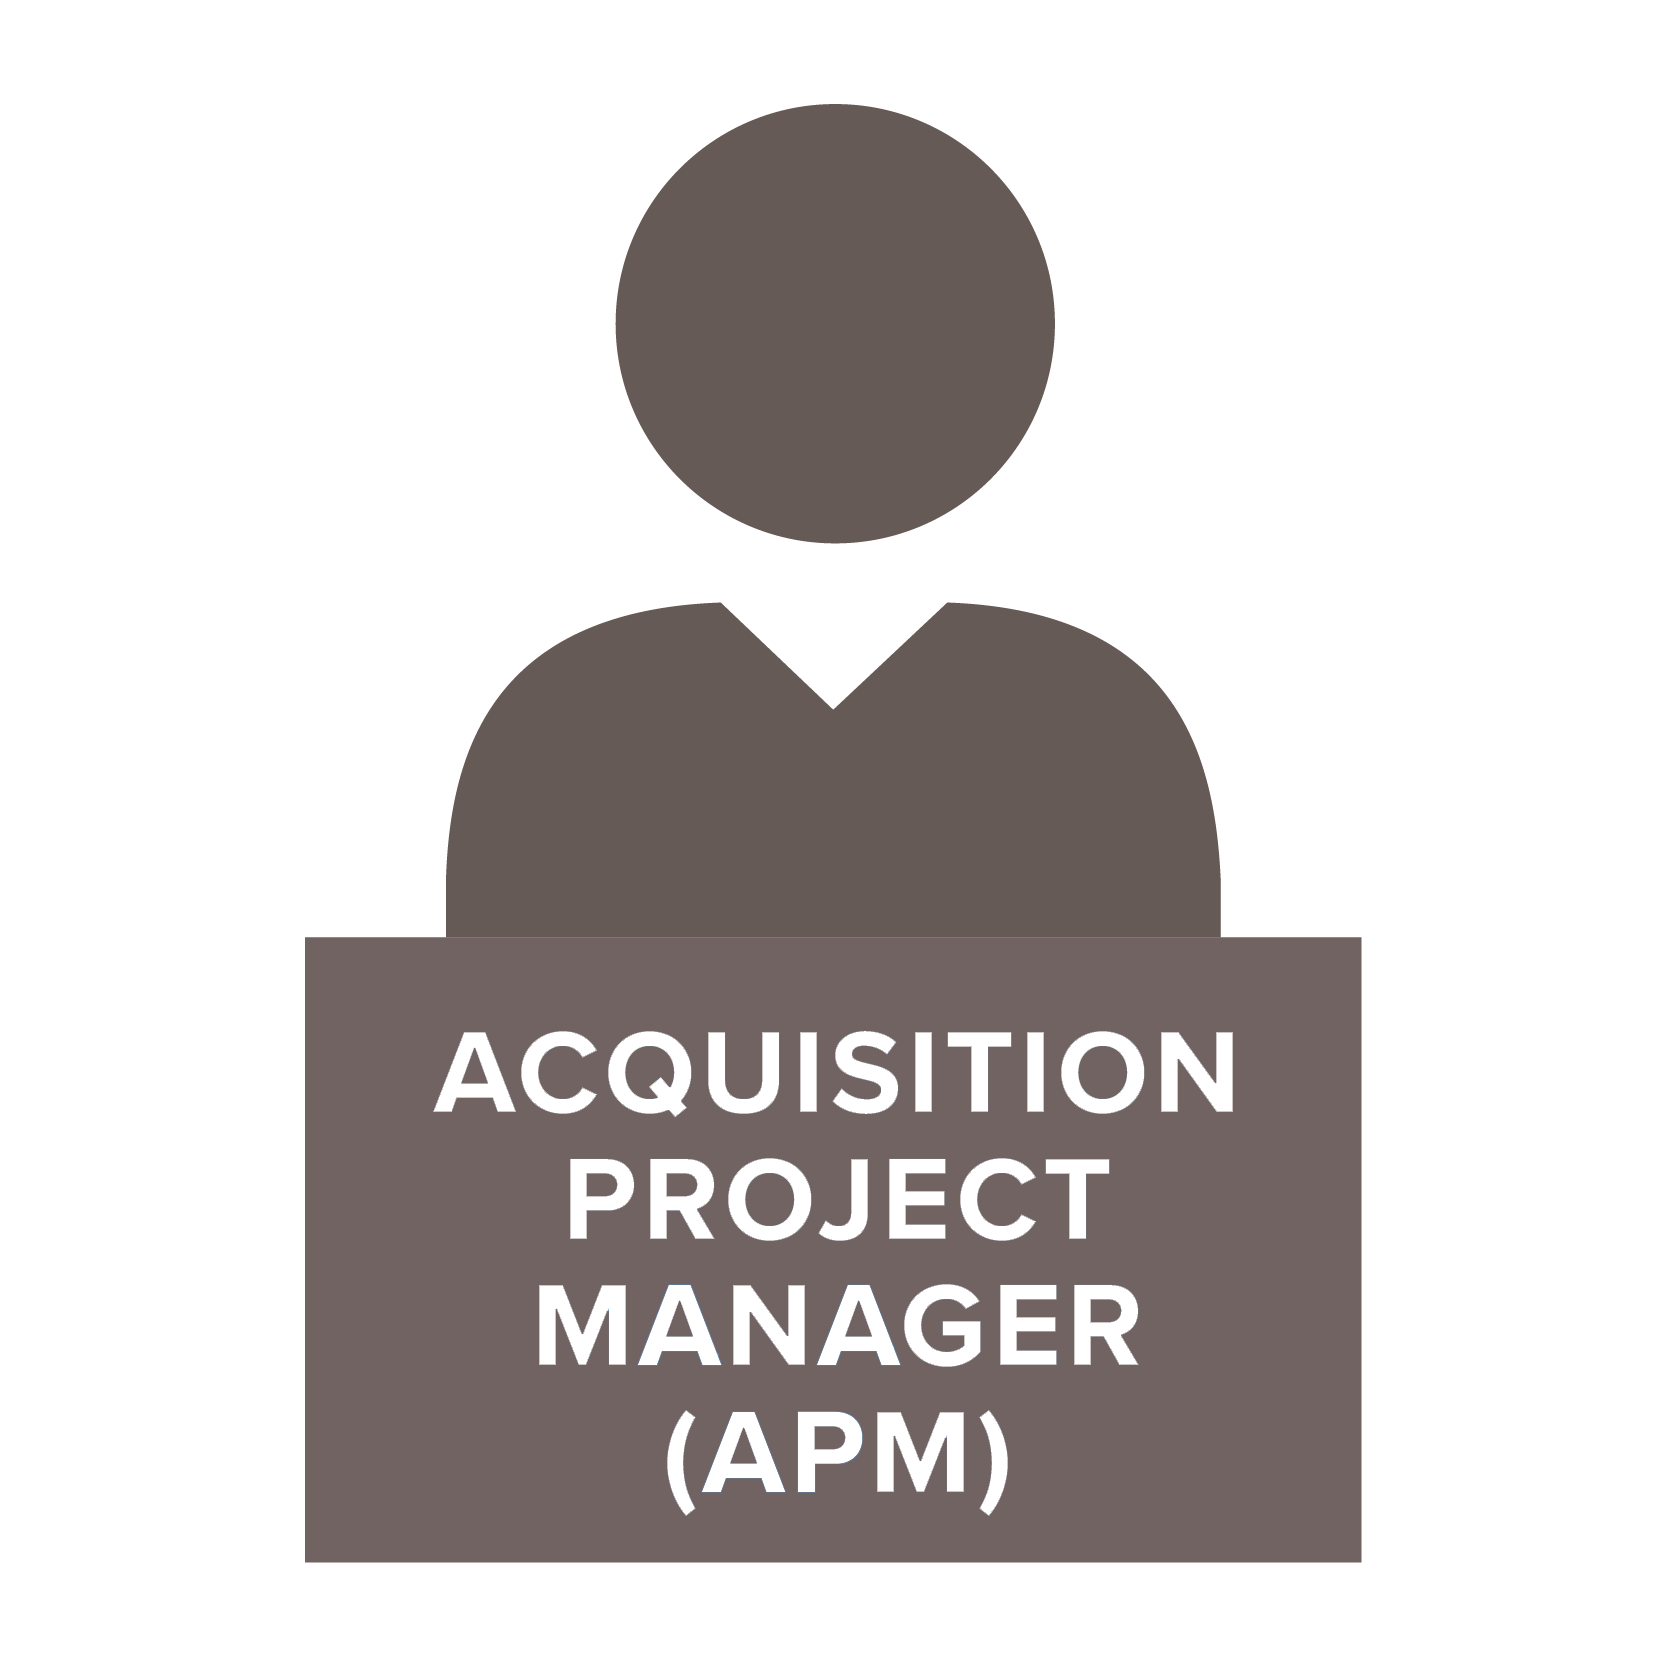 Acquisition Project Manager